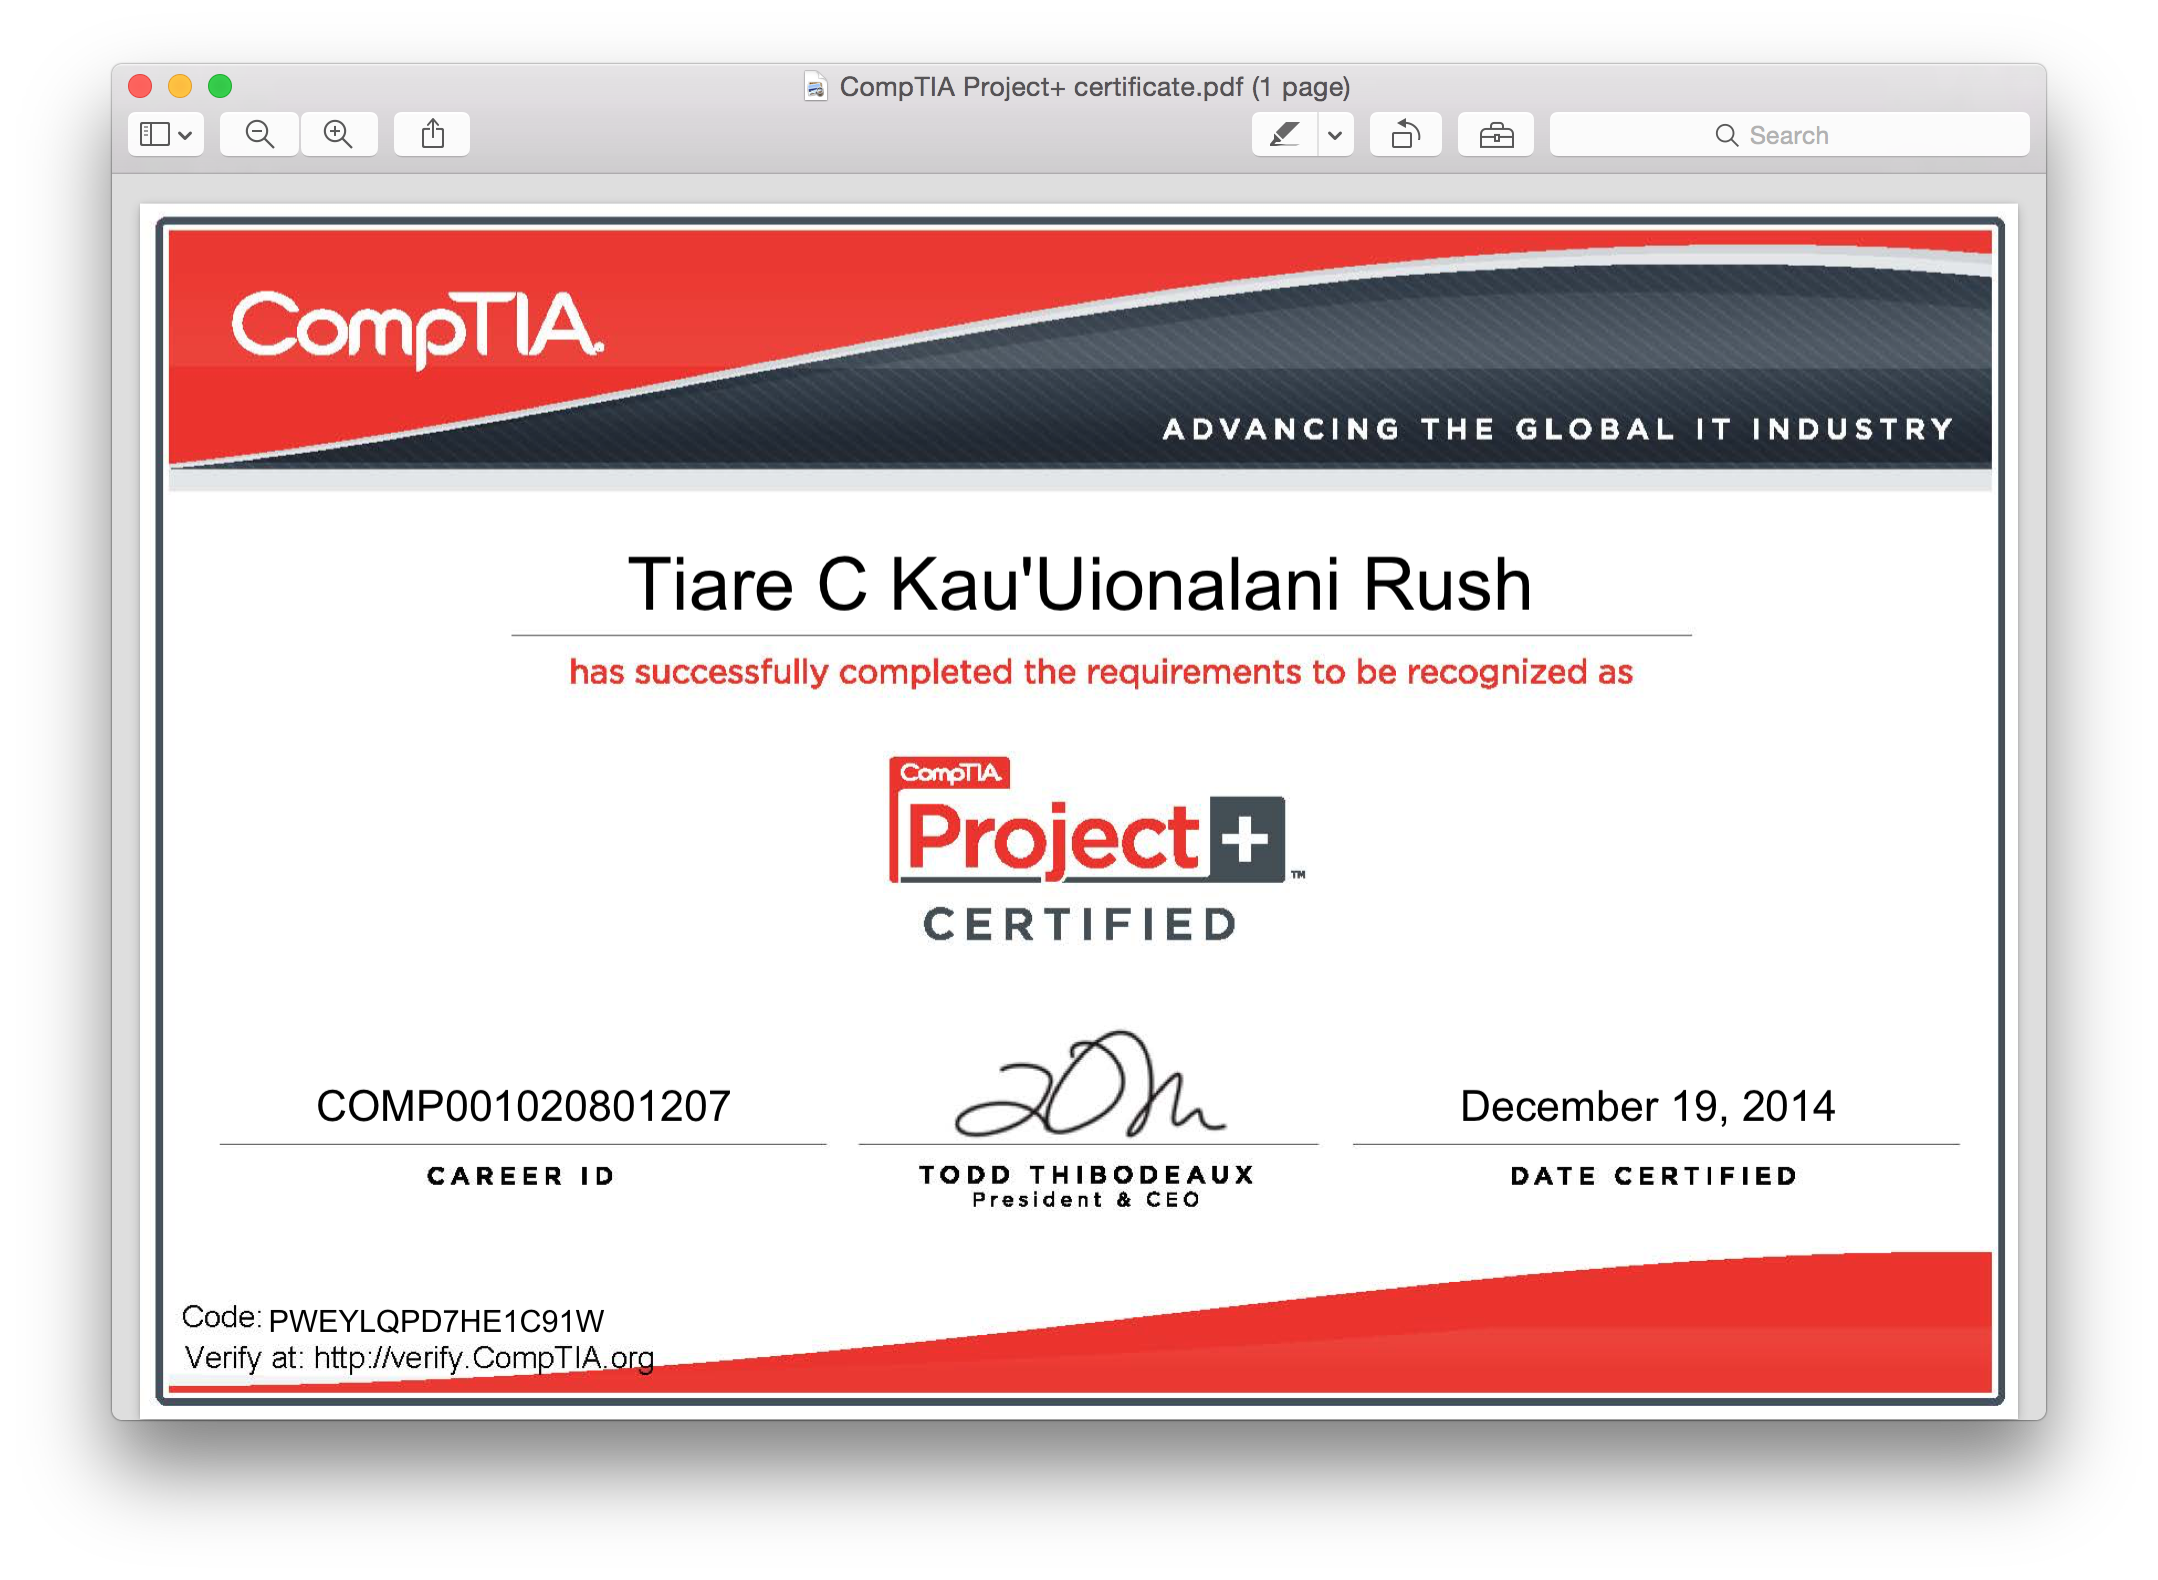 I am Project + Certified by the national CompTIA board focusing on Project Management